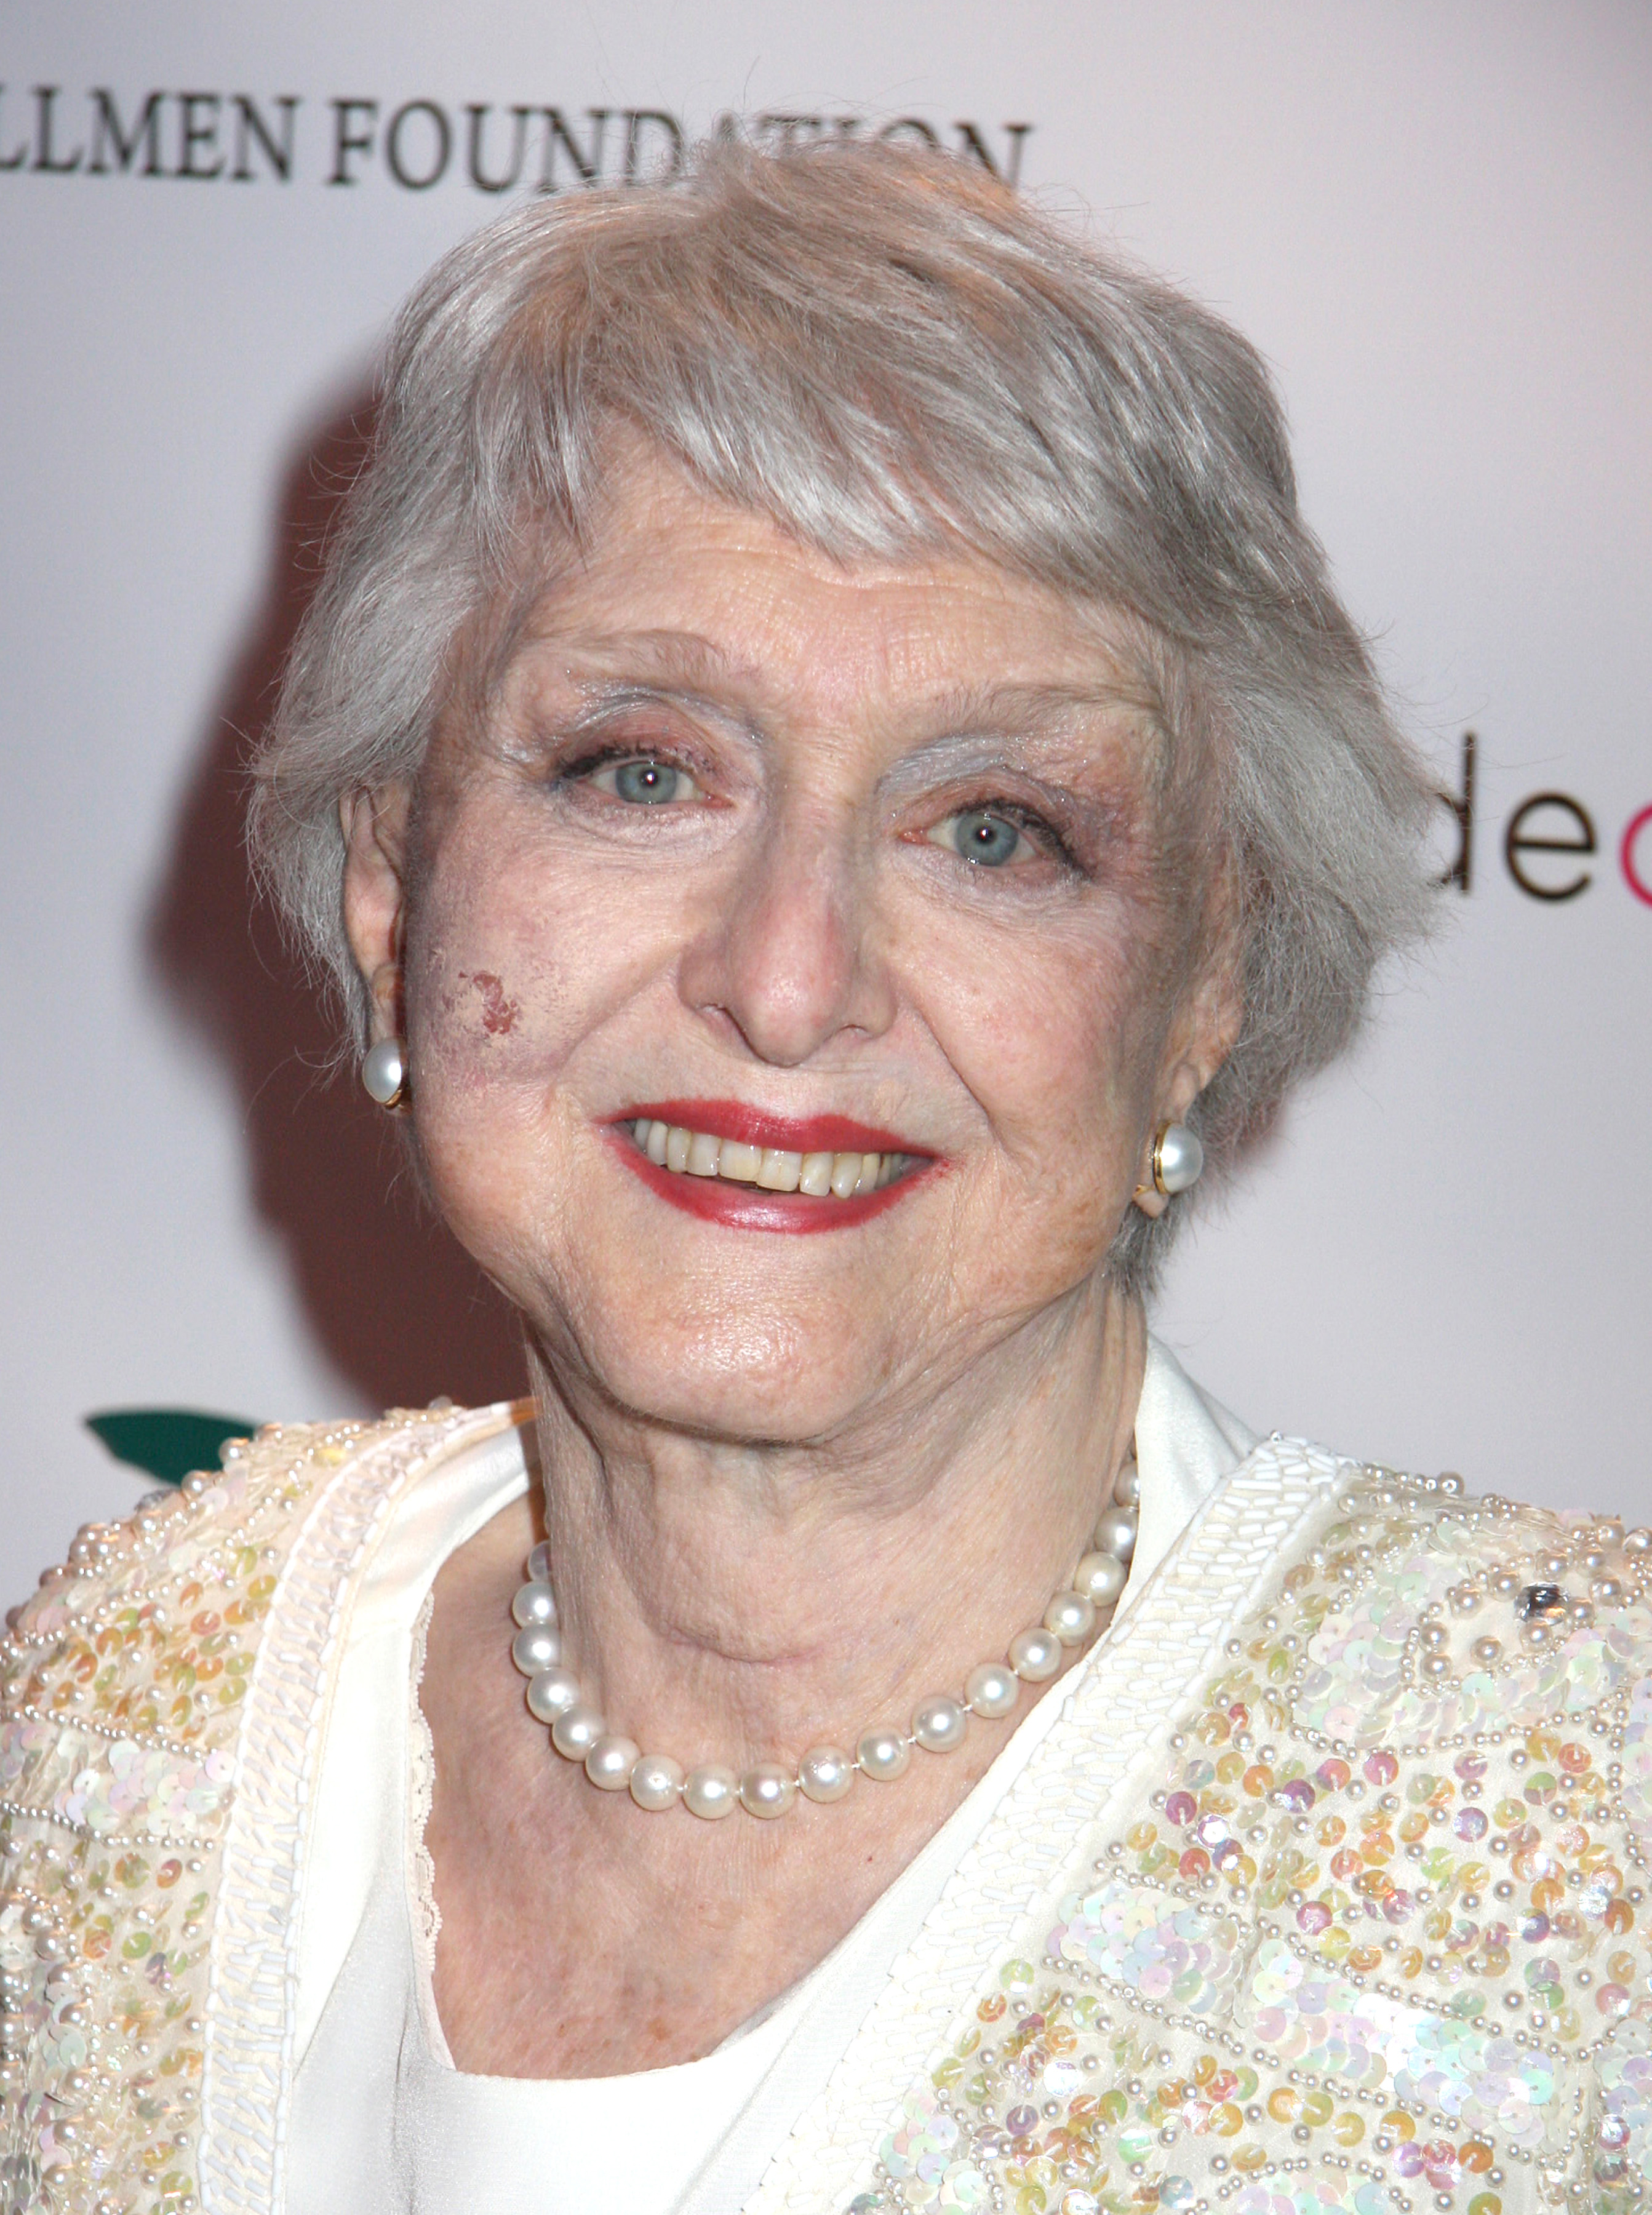 Celeste Holm 1917 - 2012 - May 6, 2006  New York, NY Celeste Holm The Bideawee Ball: For The Love of Pets held at Espace at the Atelier © Steven Bergman /  .COM *** Local Caption ***